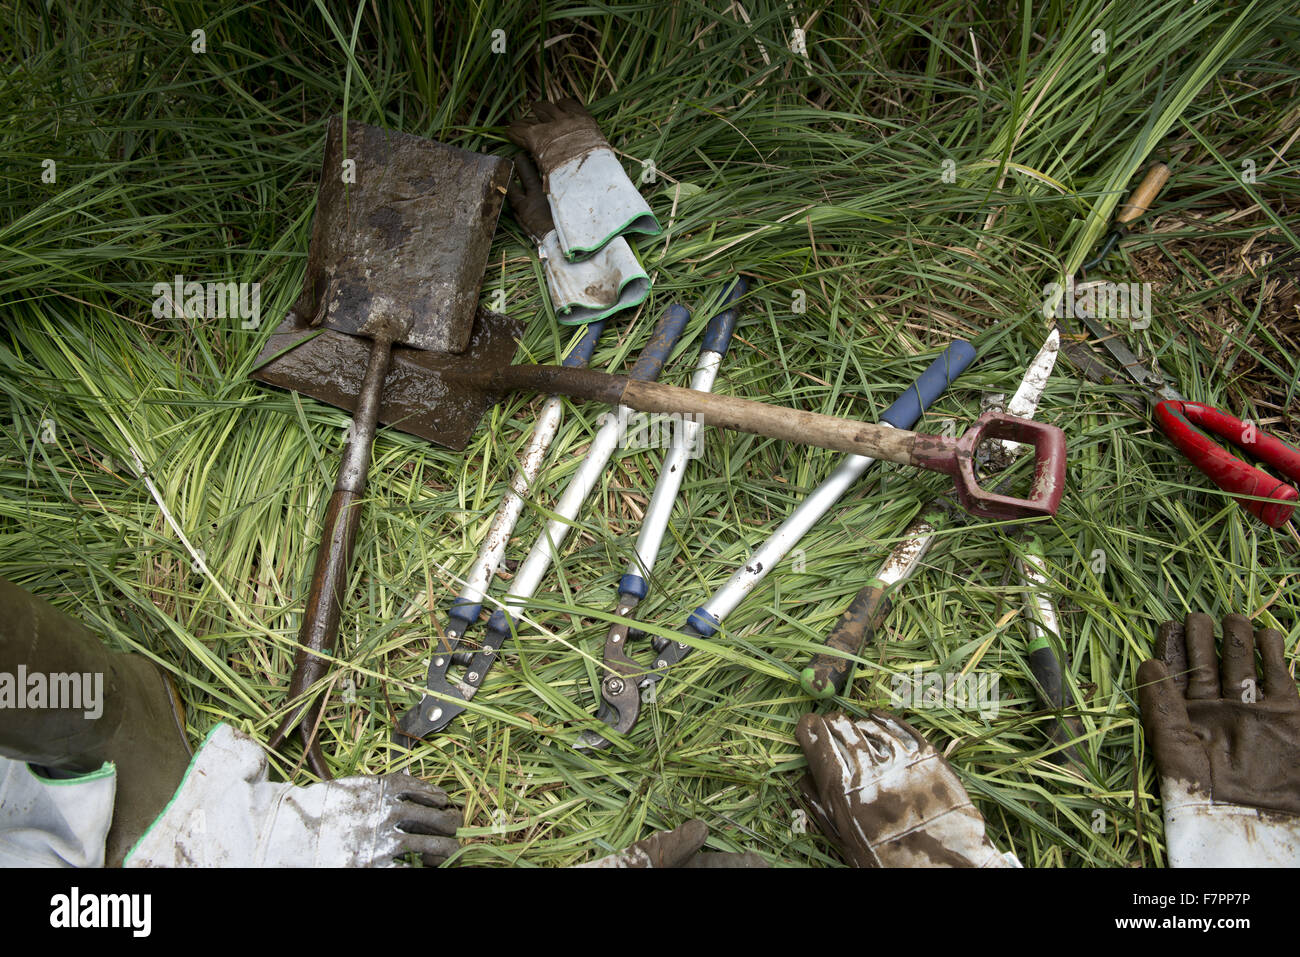 Spades and other tools for use in pond-clearing, Morden Hall Park, London. Stock Photo